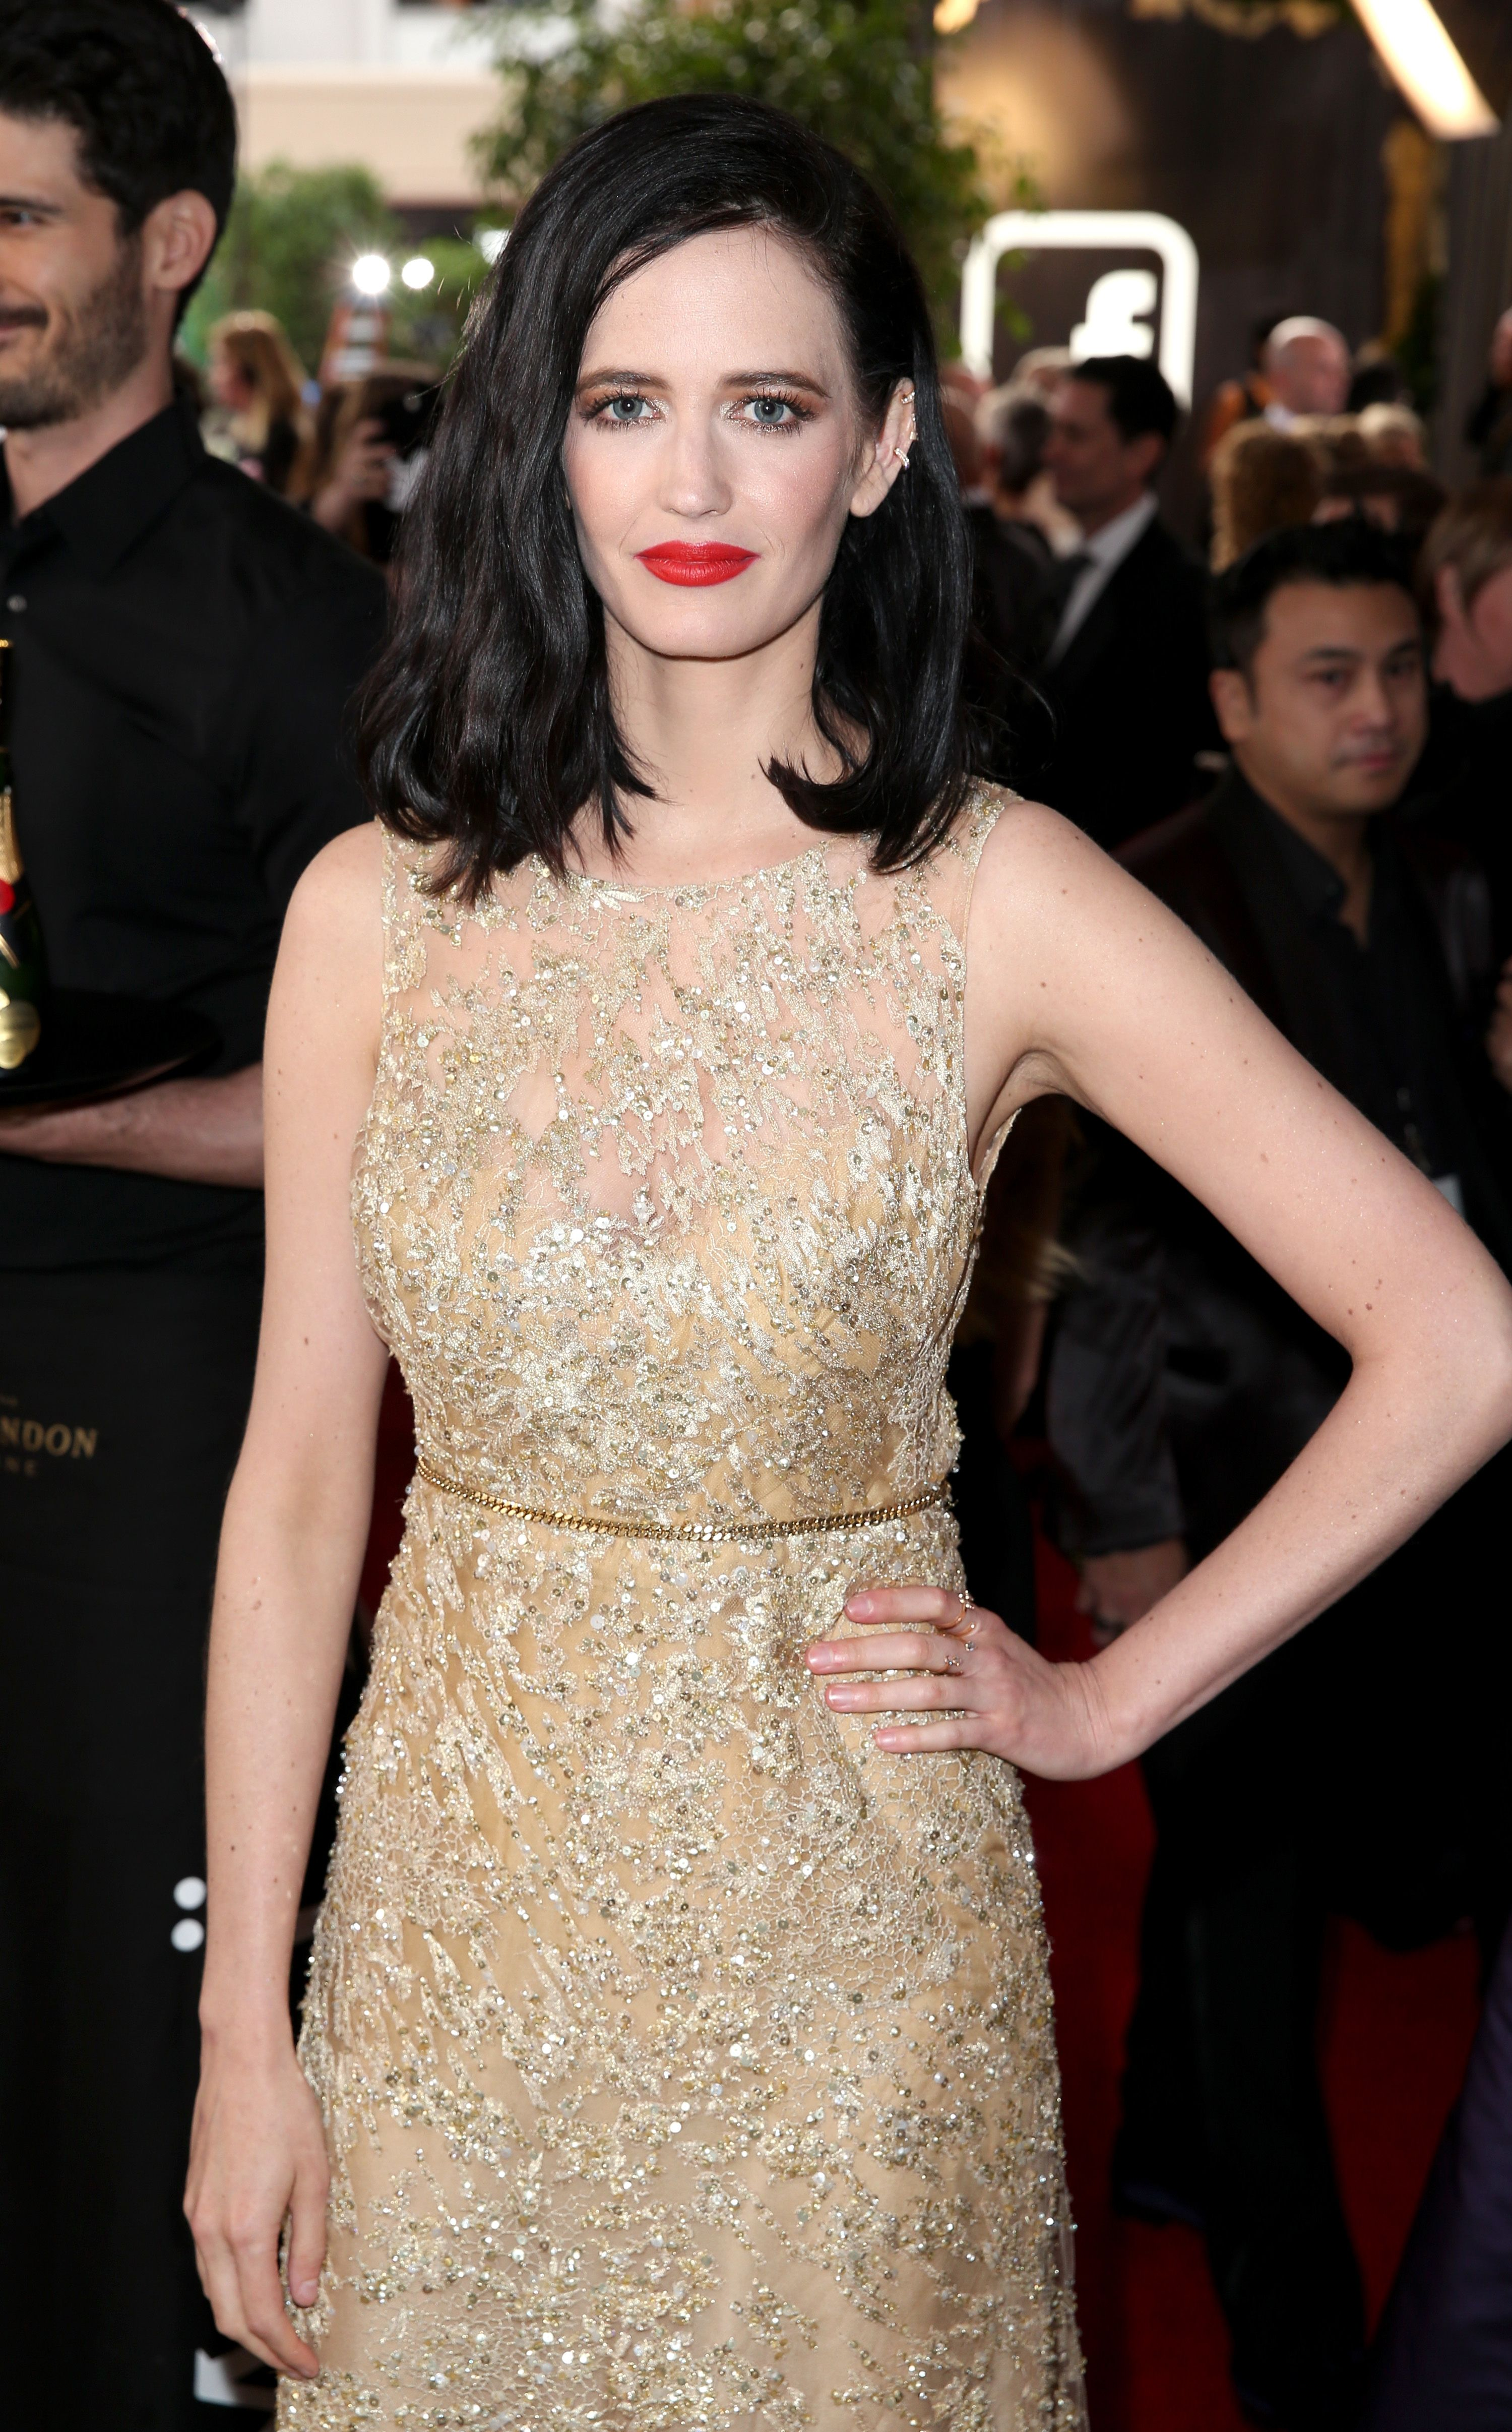 The Hypnotising Eva Green Wearing Magic Foundation In 2 Amp 3 Fair Mini Miracle Eye Wand In Shade 1 And Shade 2 Airbrush Flawless Fi Hair